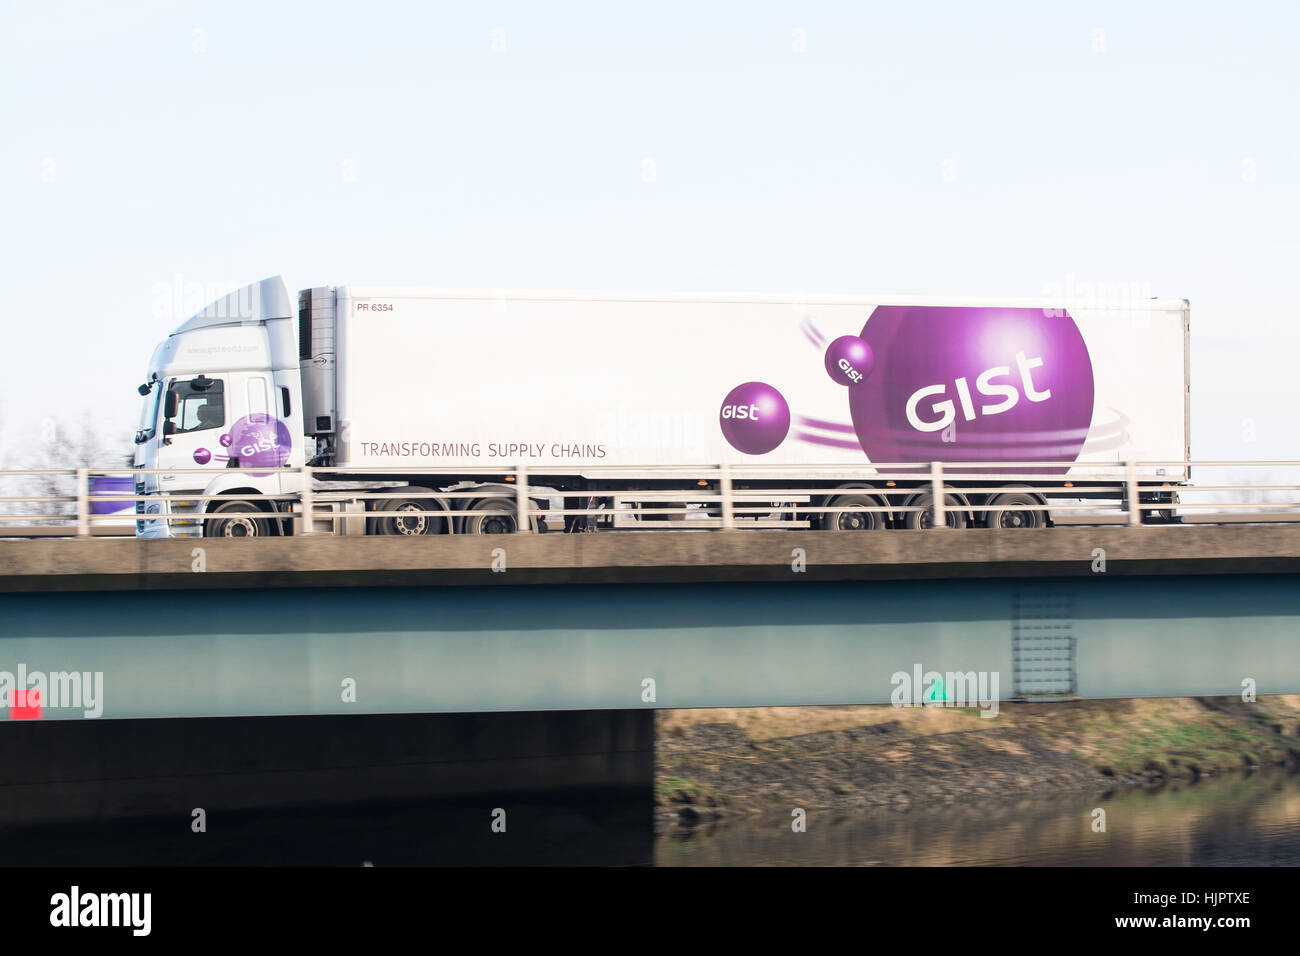 Gist logistics lorry on the motorway - Scotland, UK - Stock Image